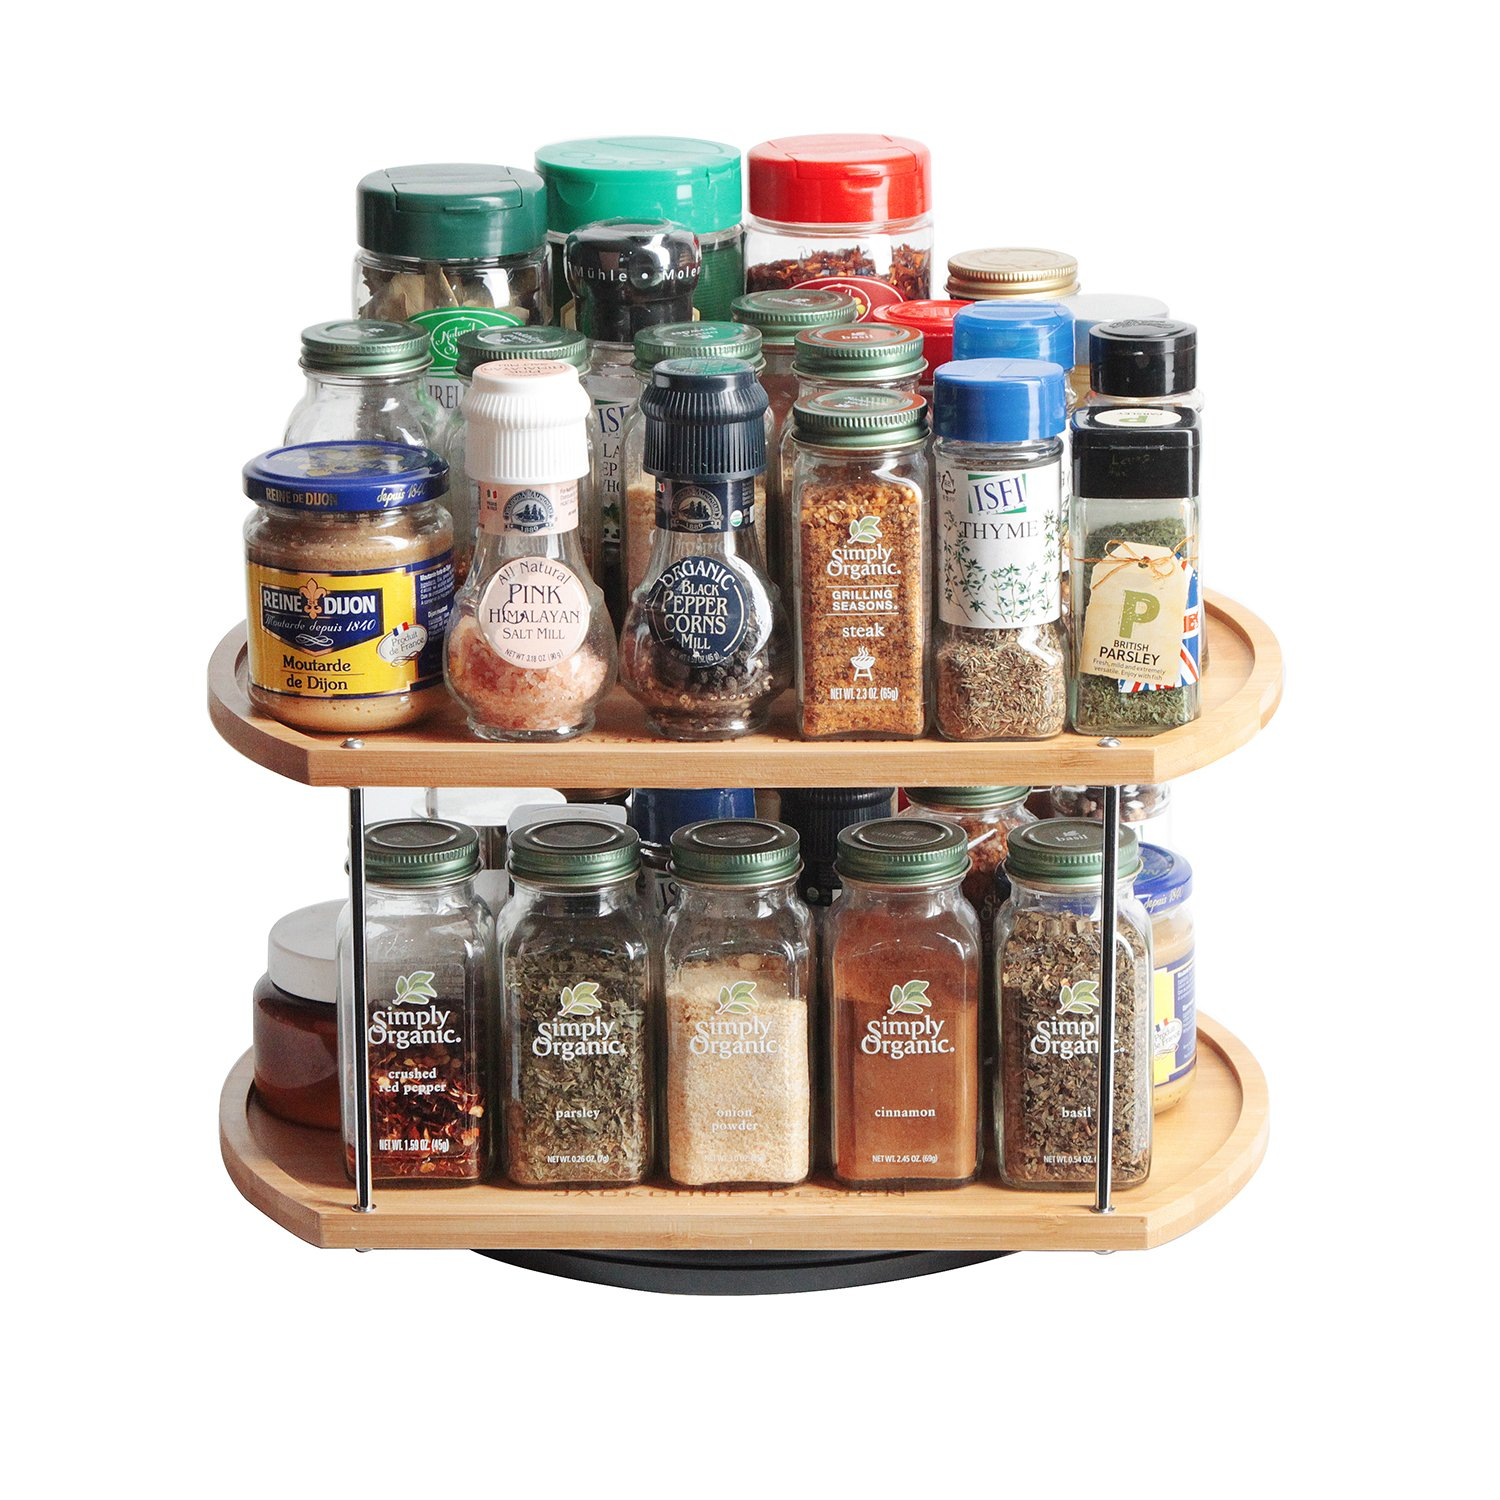 JackCubeDesign 360 Rotating Lazy Susan Bamboo Spice Jar Rack Kitchen Countertop Display Organiser Spice Bottle Worktop Holder Stand Shelf with Stunning 2 Tier(35.6 x 29.8 x 18.2 cm) – :MK383A